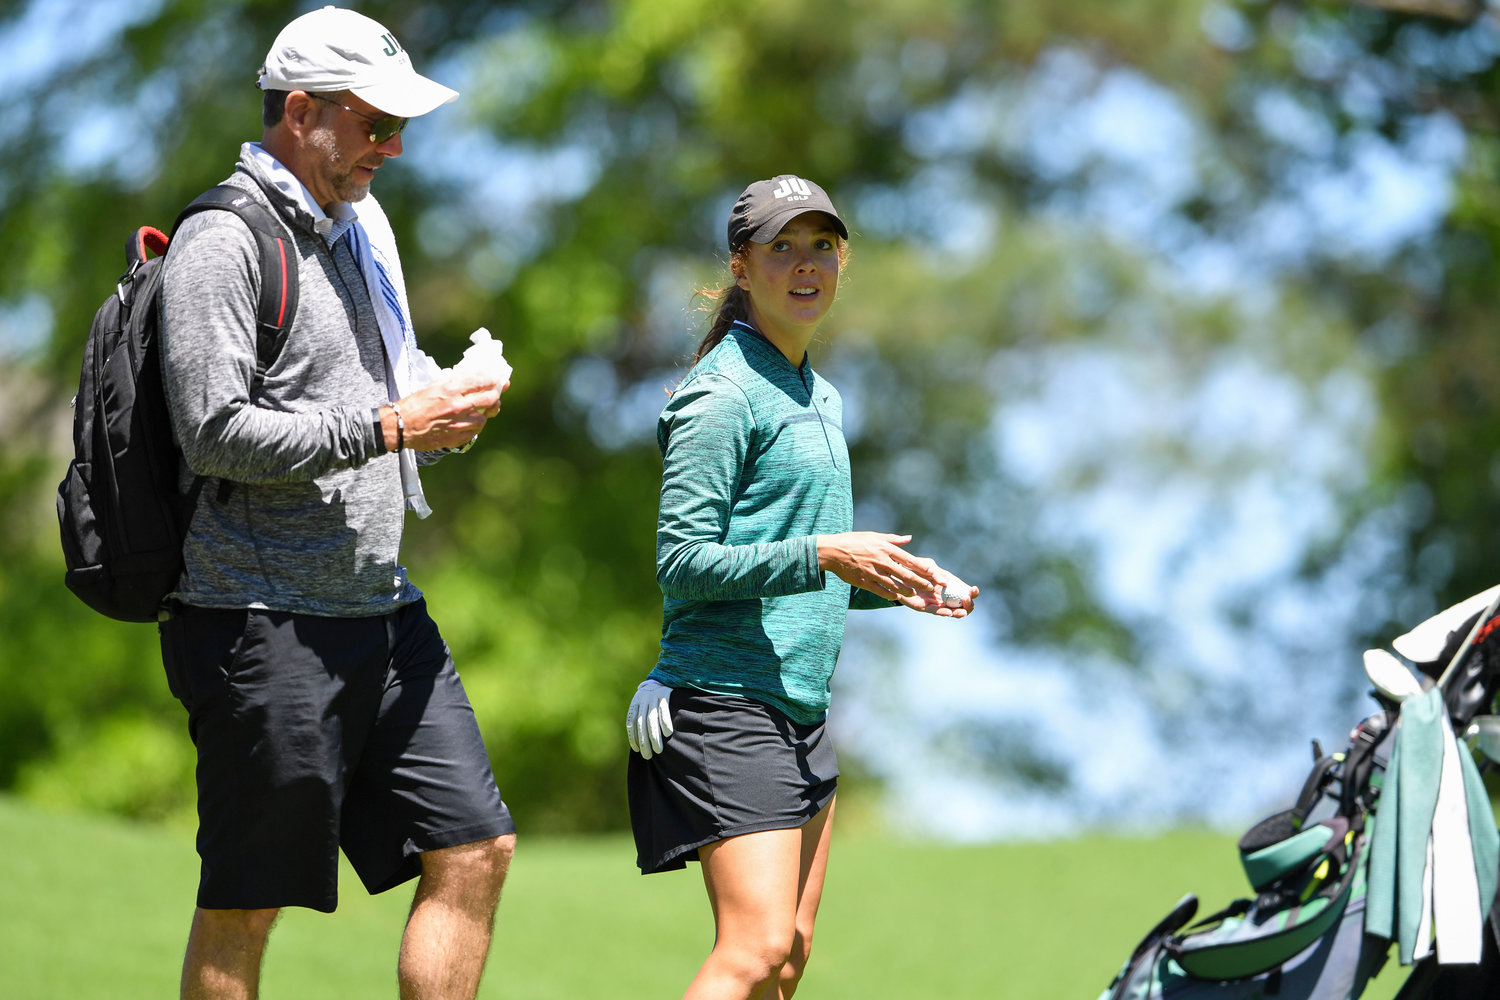 Hannah Berman, a senior at Jacksonville University, will compete in the Ladies National Golf Association Amateur Championship beginning July 29.